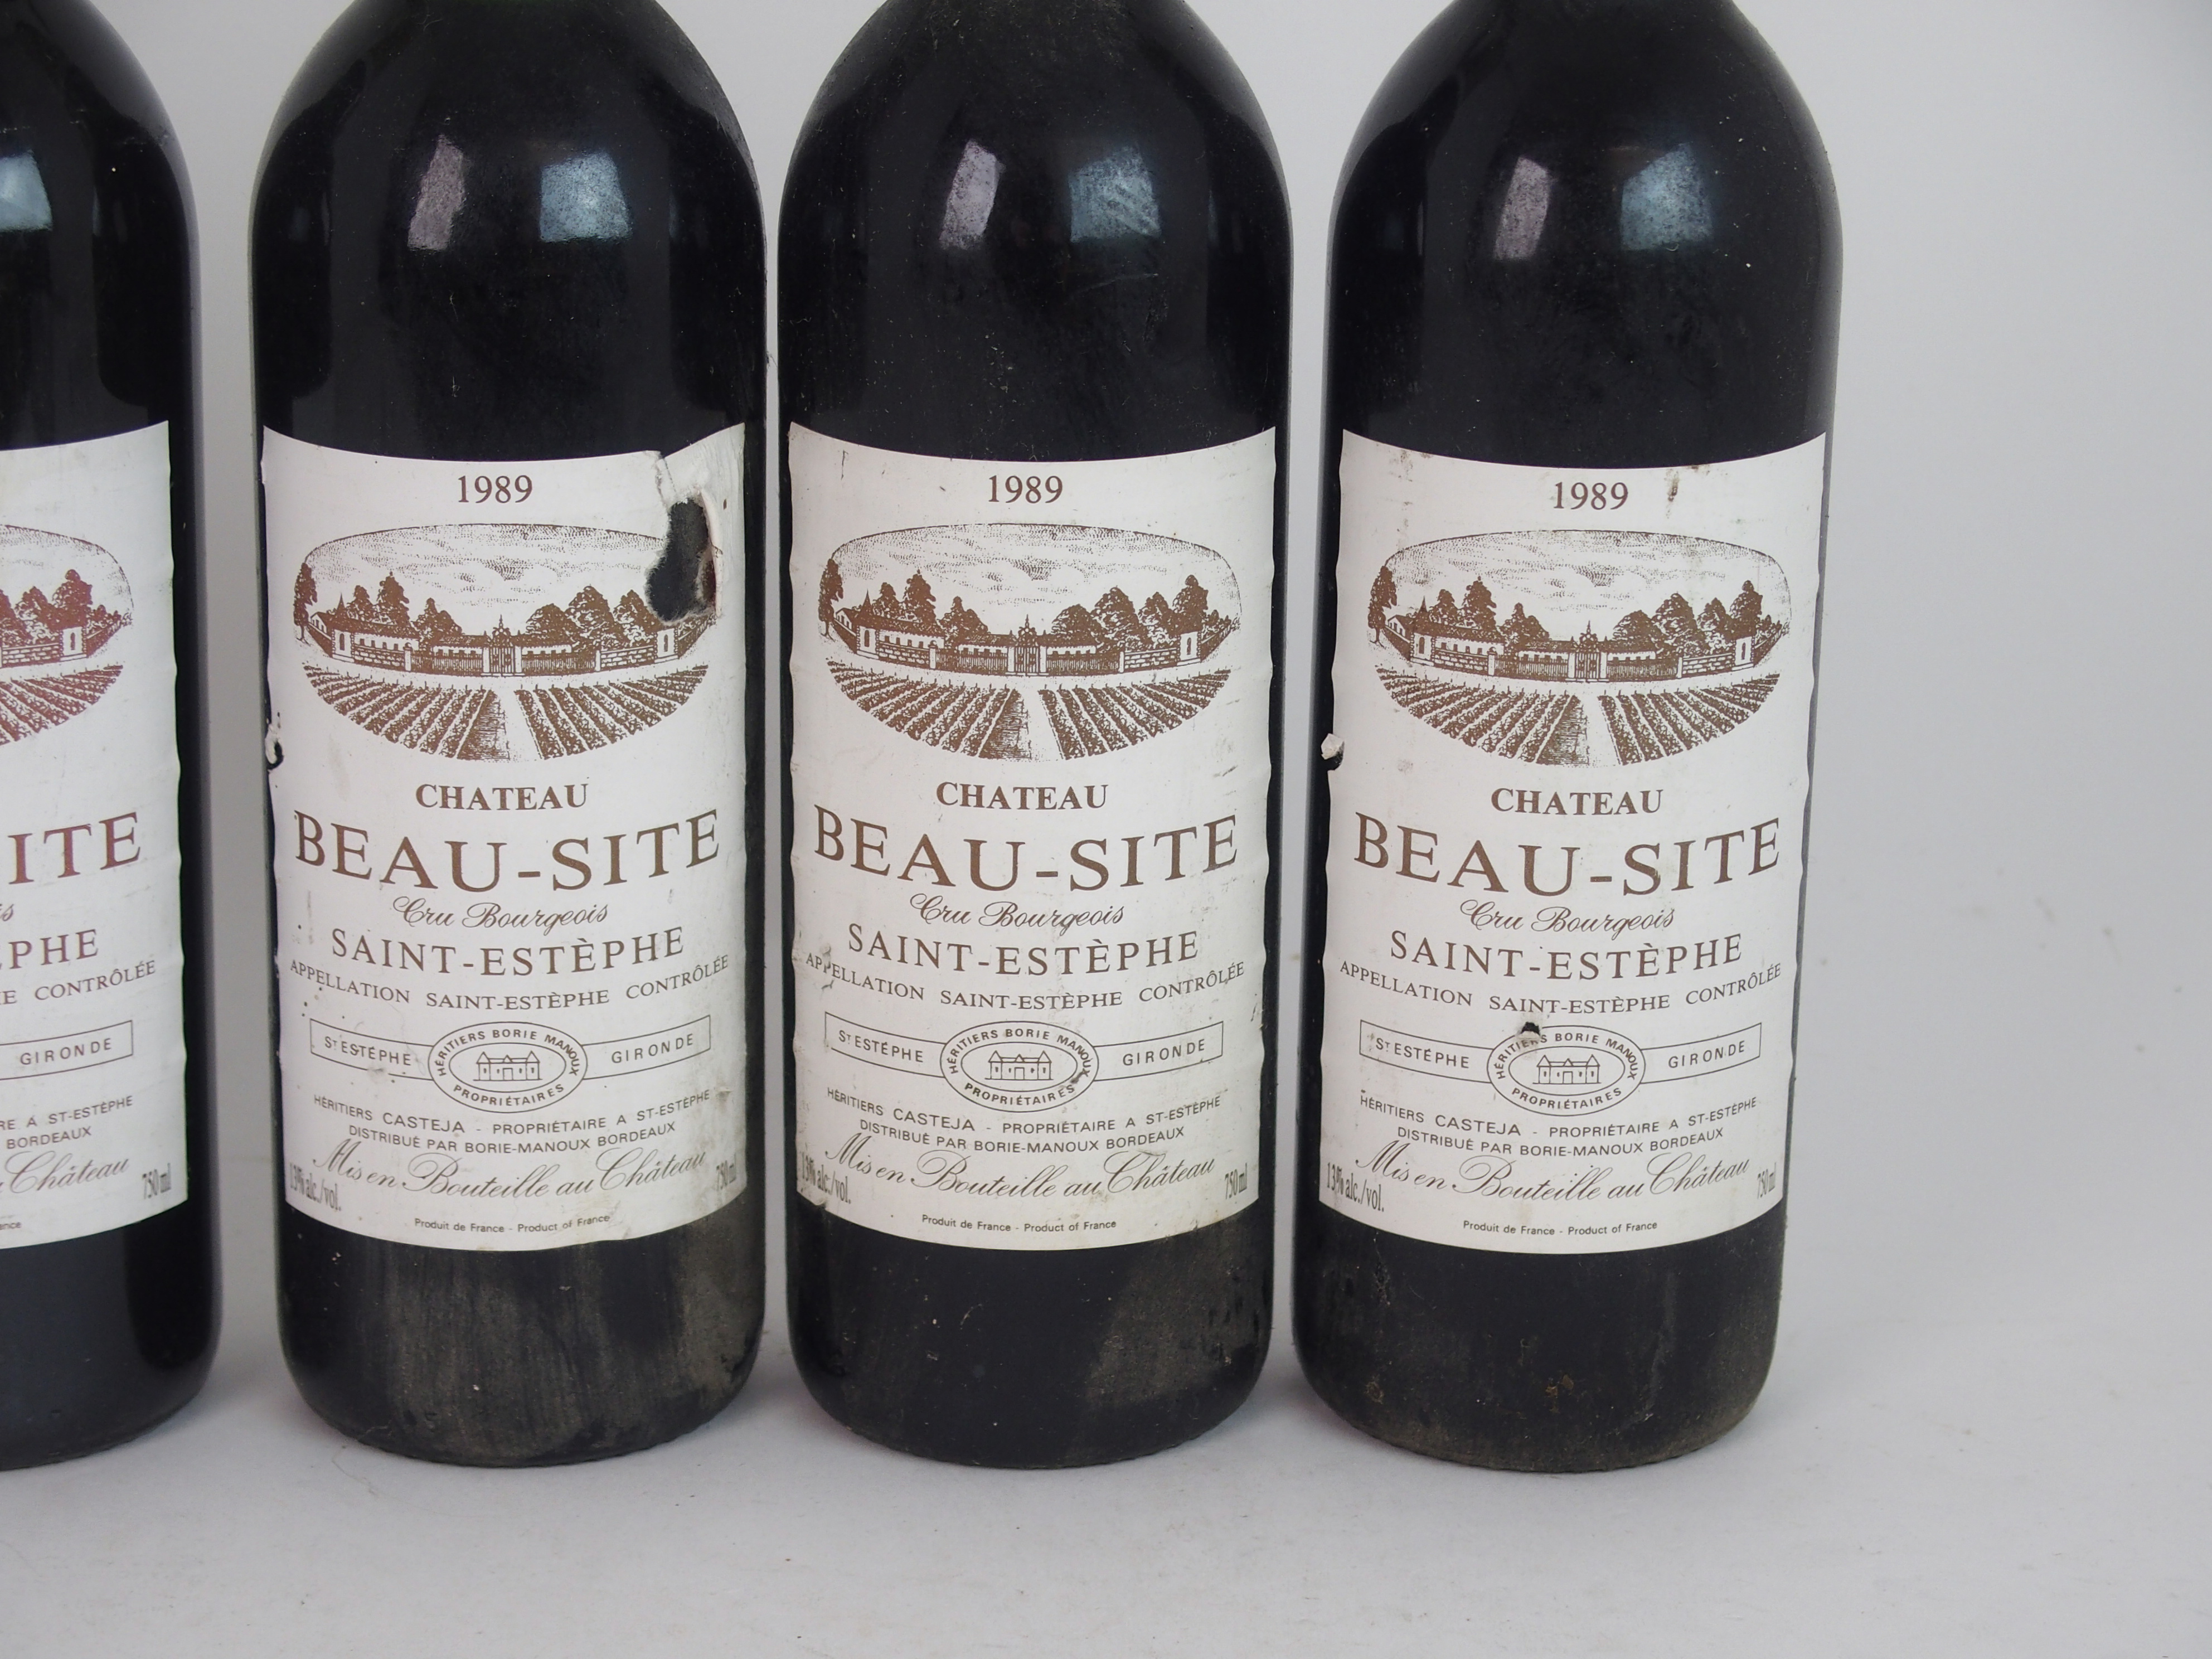 ELEVEN BOTTLES OF CHATEAU BEAU-SITE, SAINT ESTEPHE, 1989 13%vol, 750ml, labels stained and some torn - Image 7 of 8